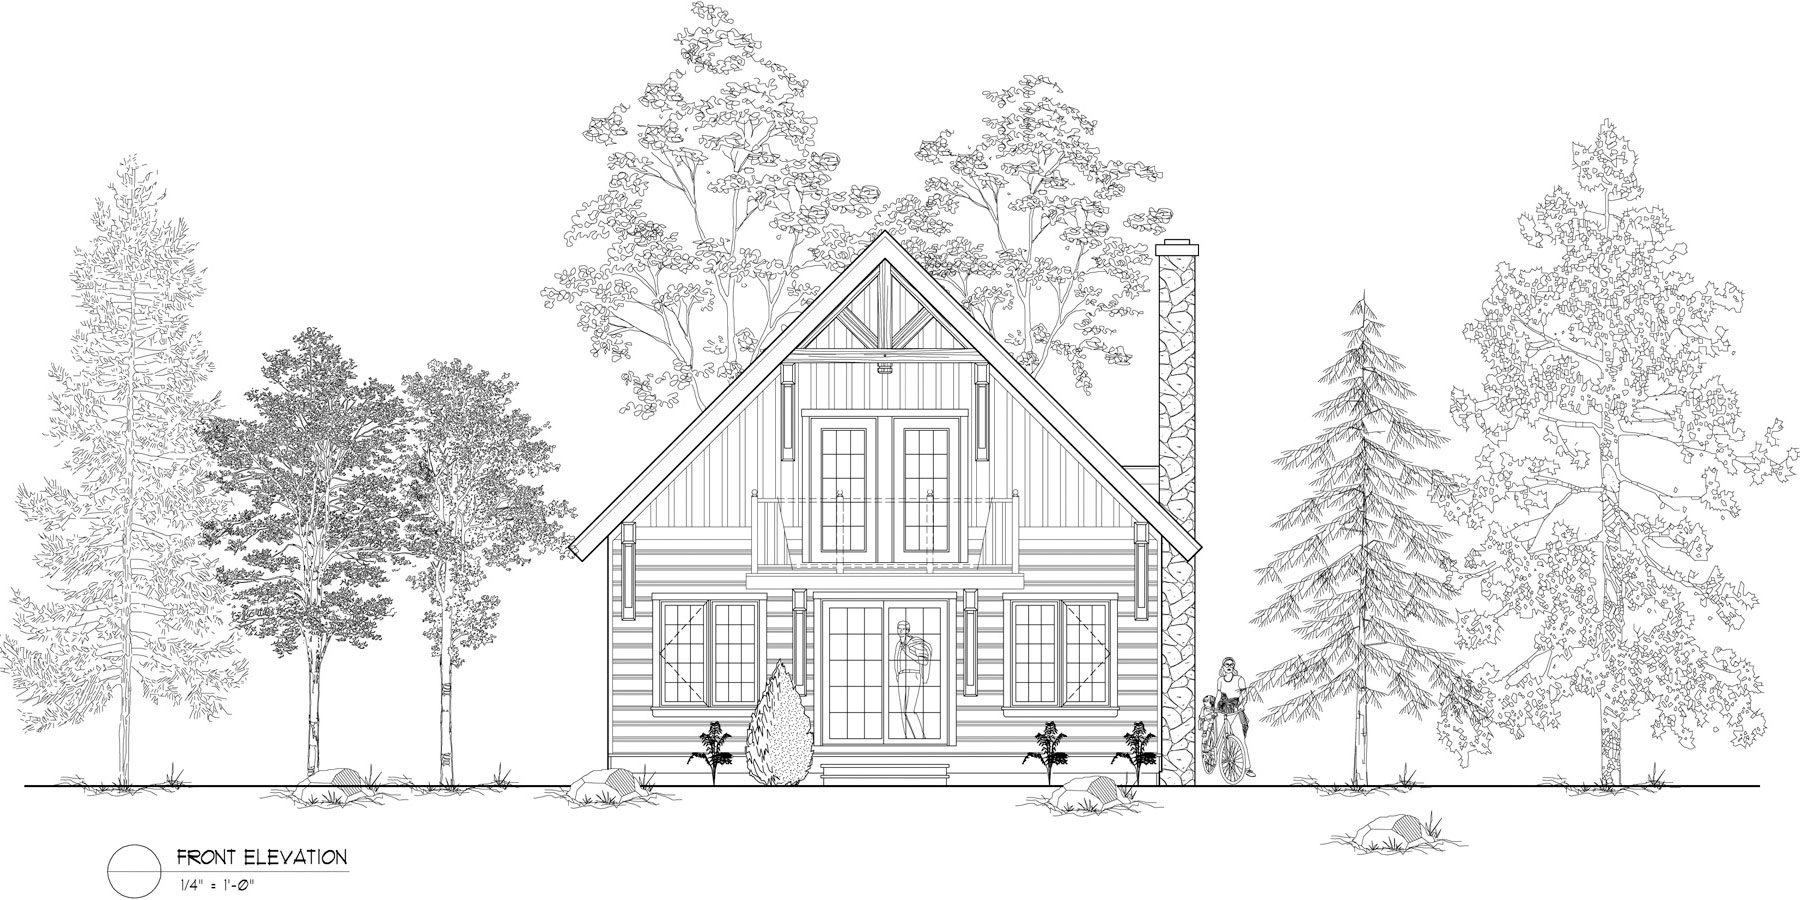 Normerica Timber Frames, House Plan, The Jackson 3605, Front Elevation